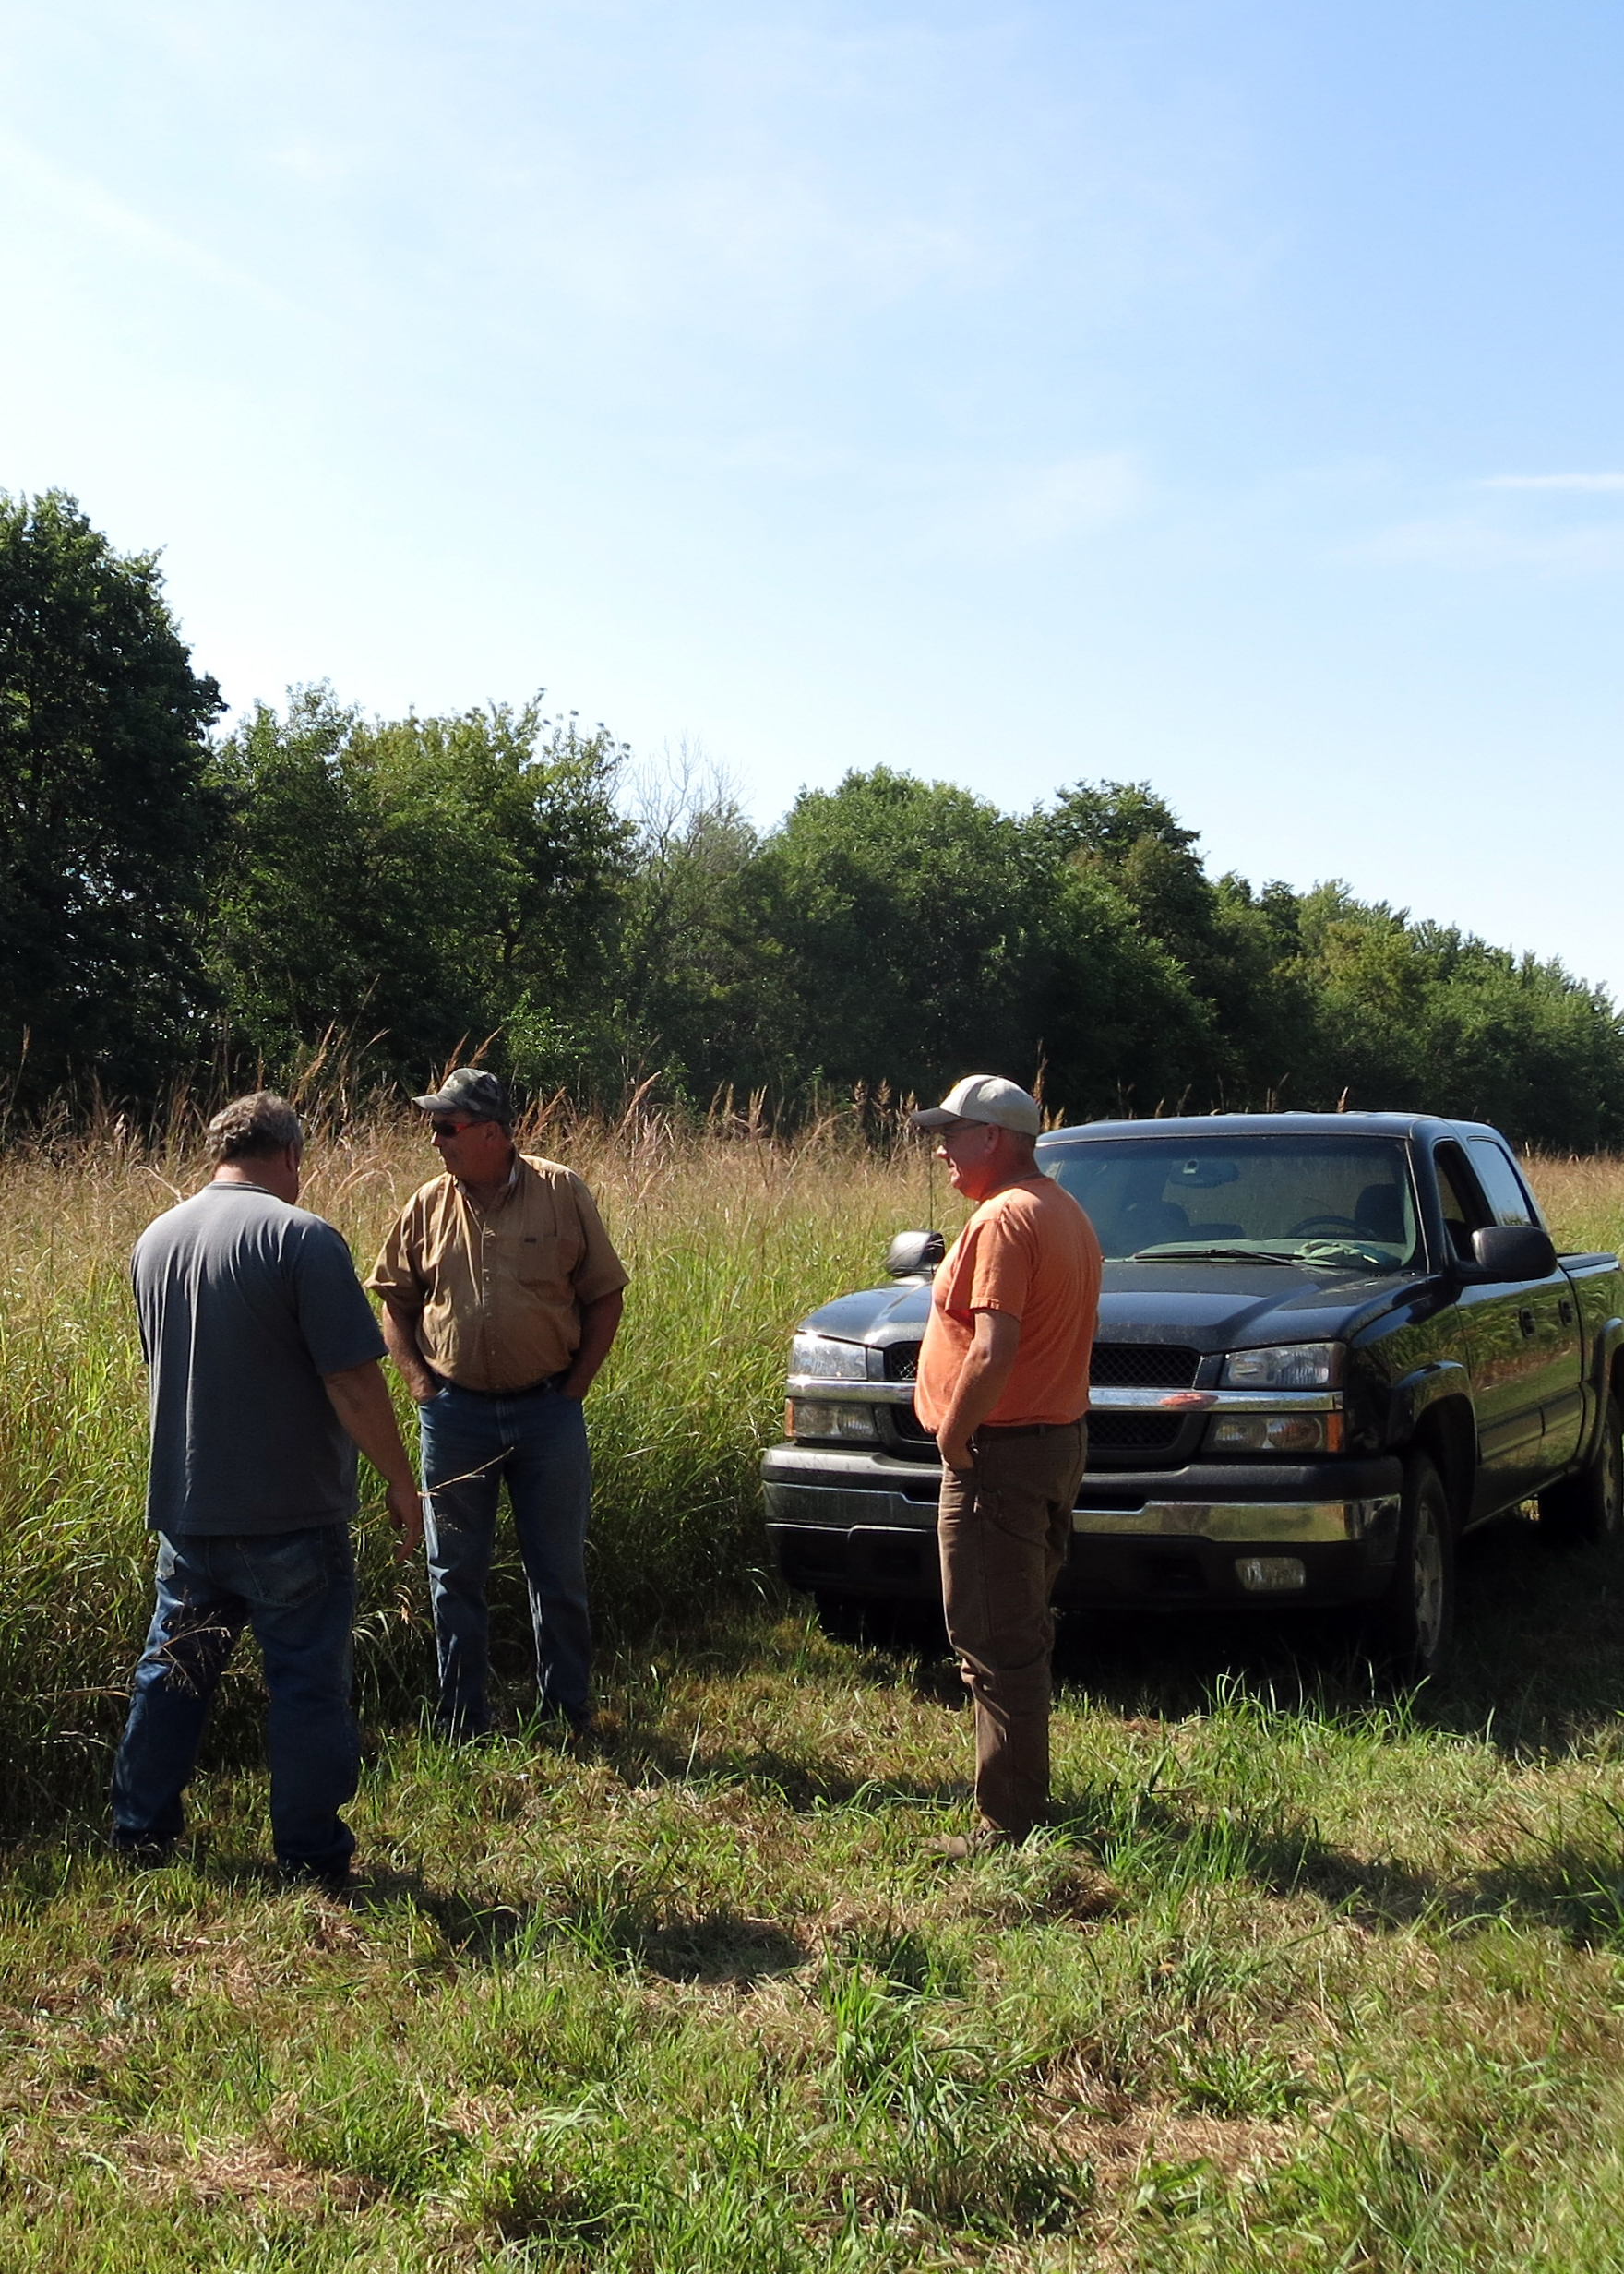 outreach and assessment - Our Field Outreach Specialist lives in central Illinois and works with our partners to identify cropland owners interested in adopting this practice as part of their nutrient loss reduction strategy. She meets one-on-one with the landowners and determines if their farm system would work for a tile-drainage based constructed wetland. An off-site assessment is performed to determine if the site has the adequate tile drainage area (hydrology), soils, and topography required for a Smart Wetland.